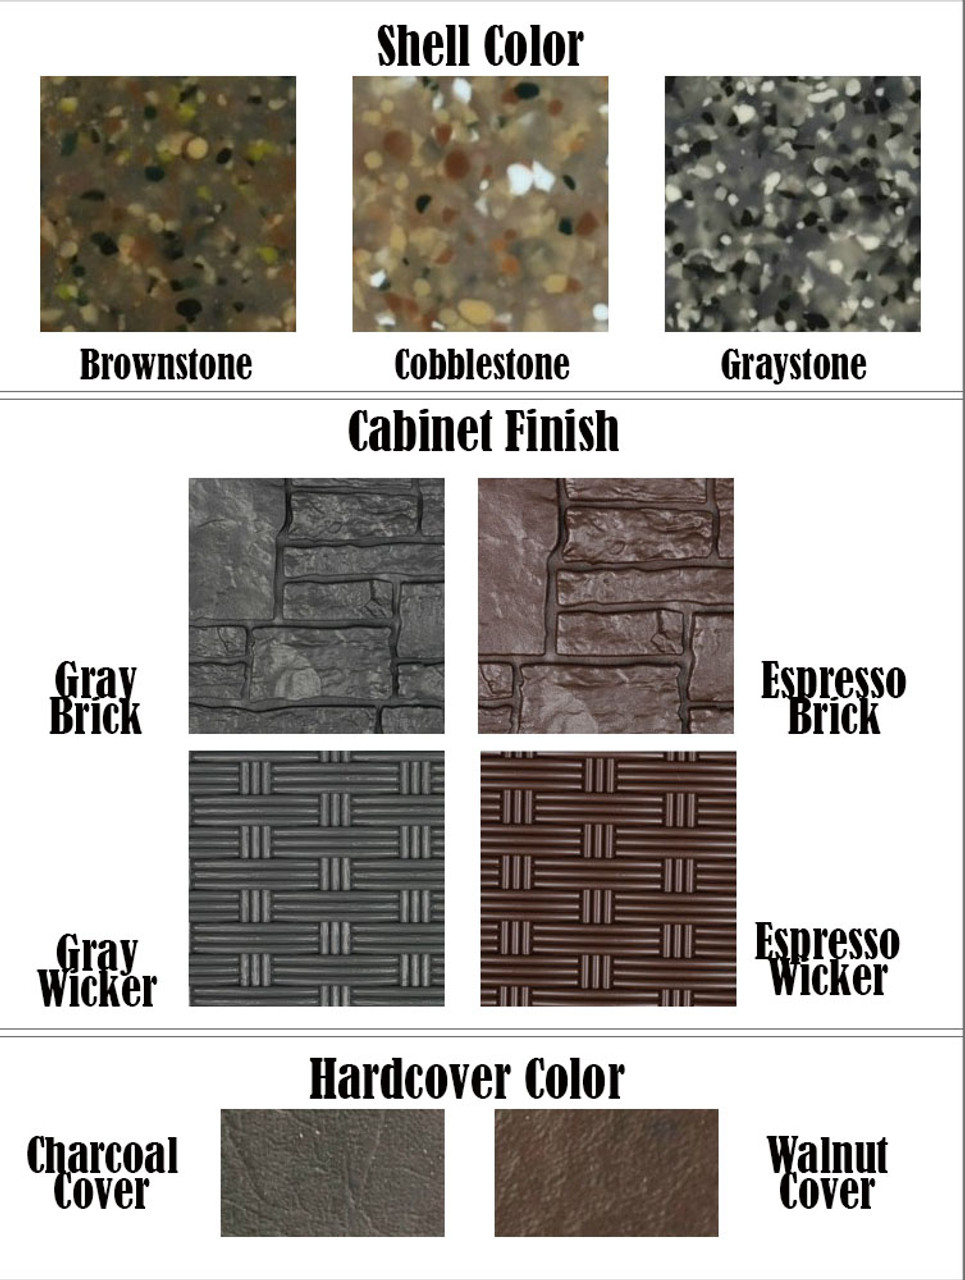 Big EZ Spa Cabinet Finishes & Shell Color Options